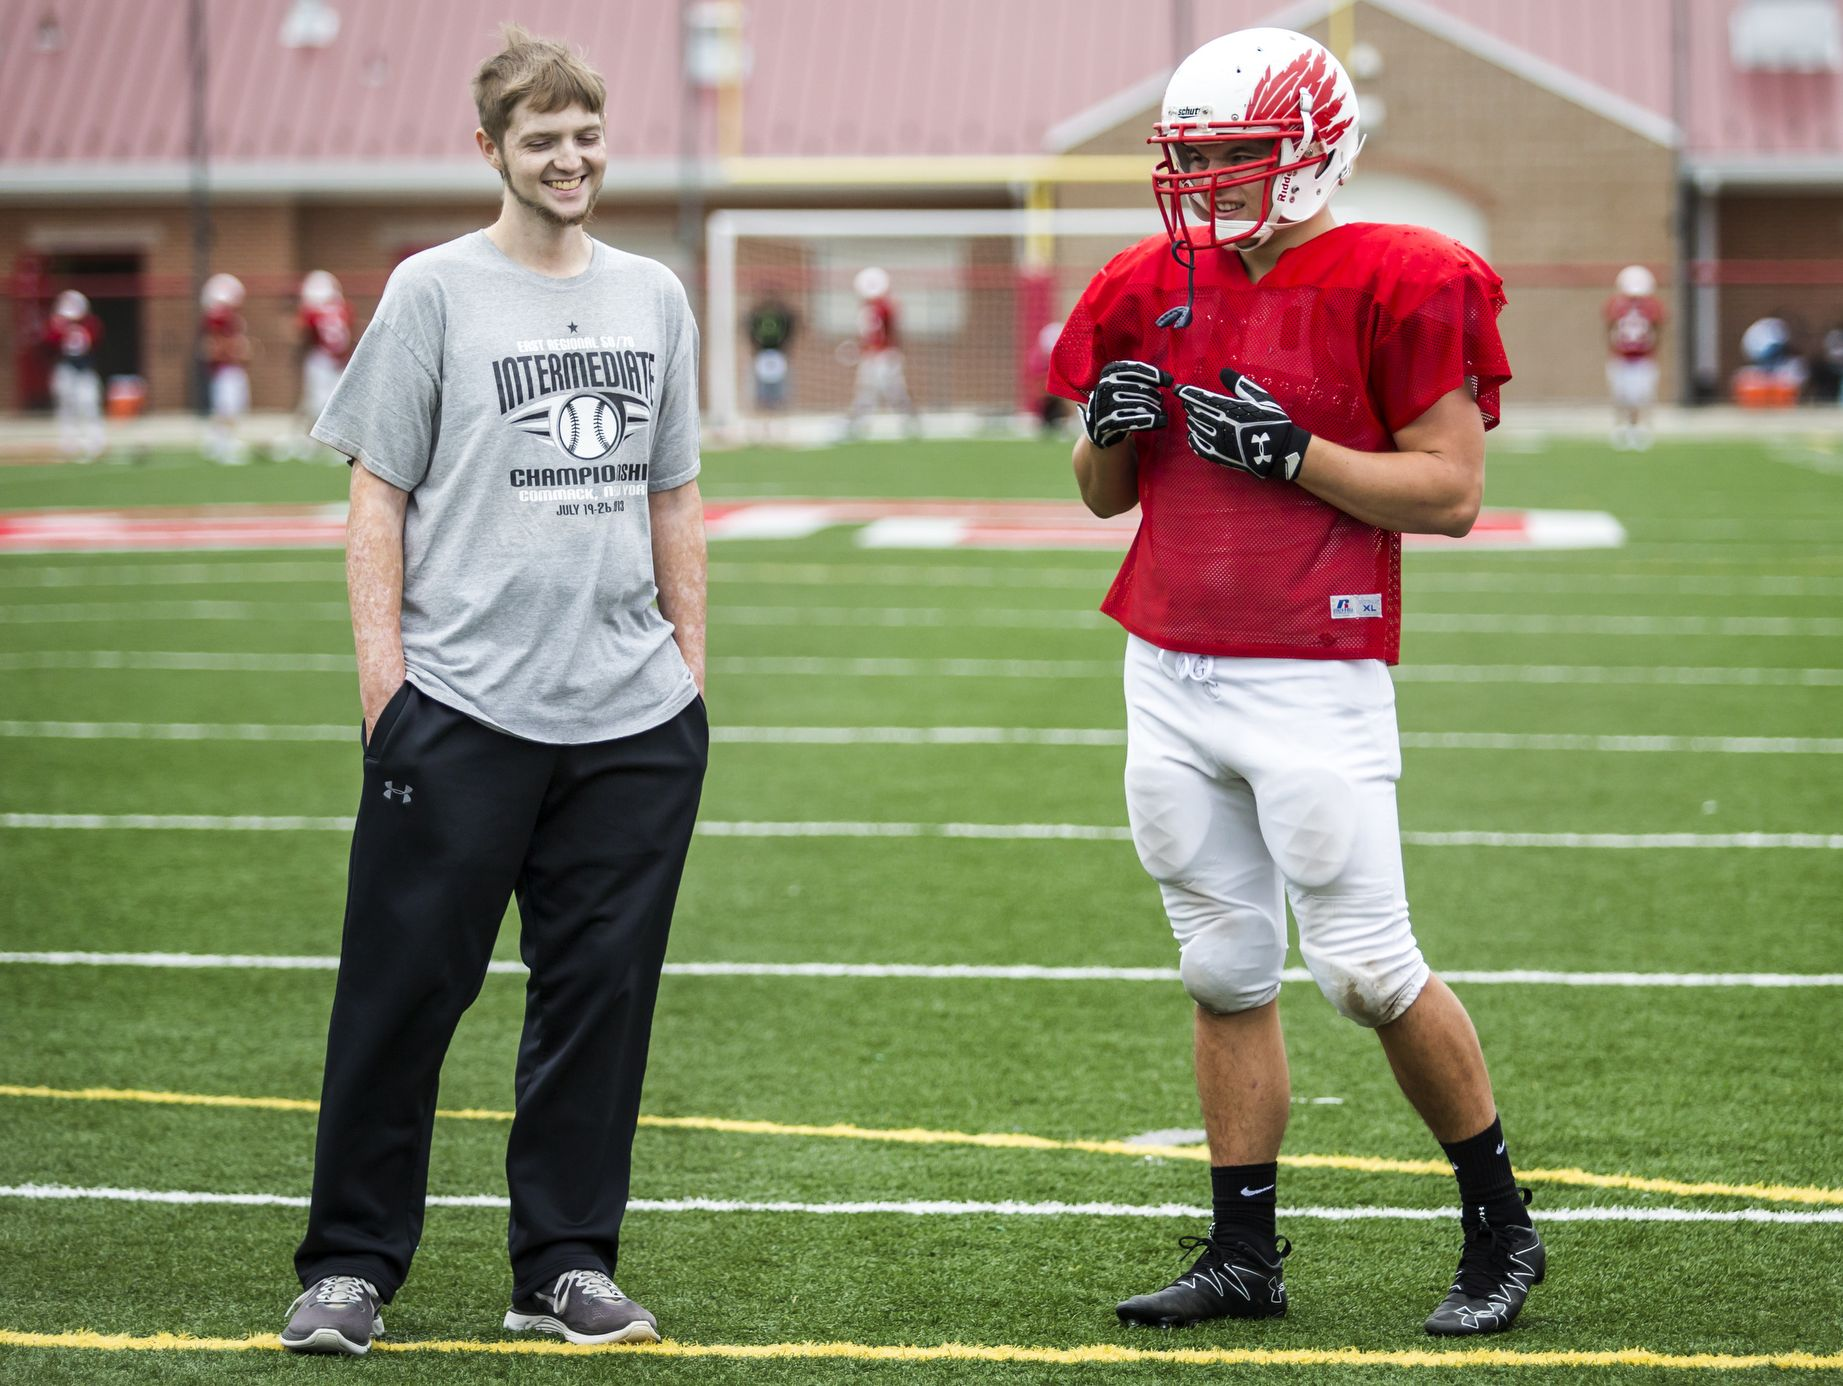 Colby Atkinson talks with a teammate at Smyrna High football practice last week.